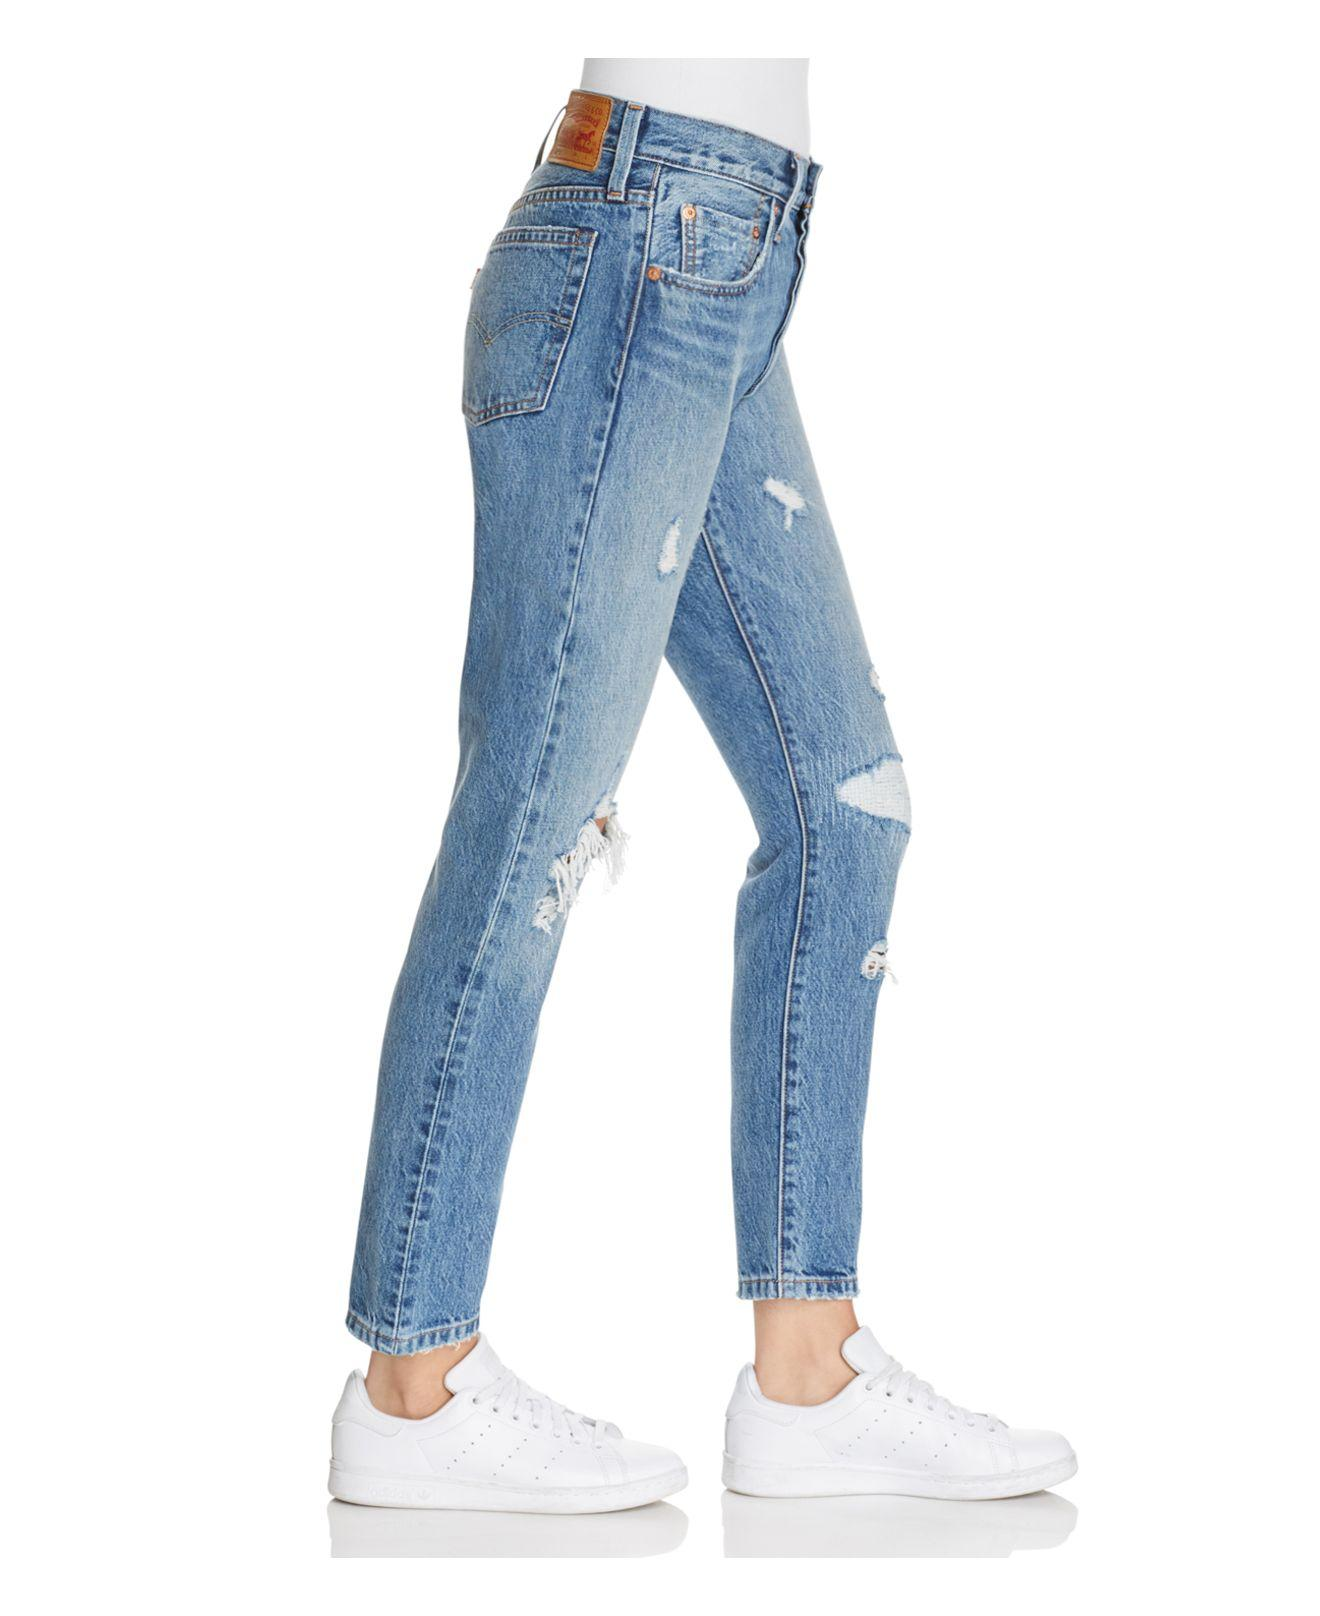 lyst levi 39 s 501 selvedge skinny jeans in pacific ocean blues in blue. Black Bedroom Furniture Sets. Home Design Ideas